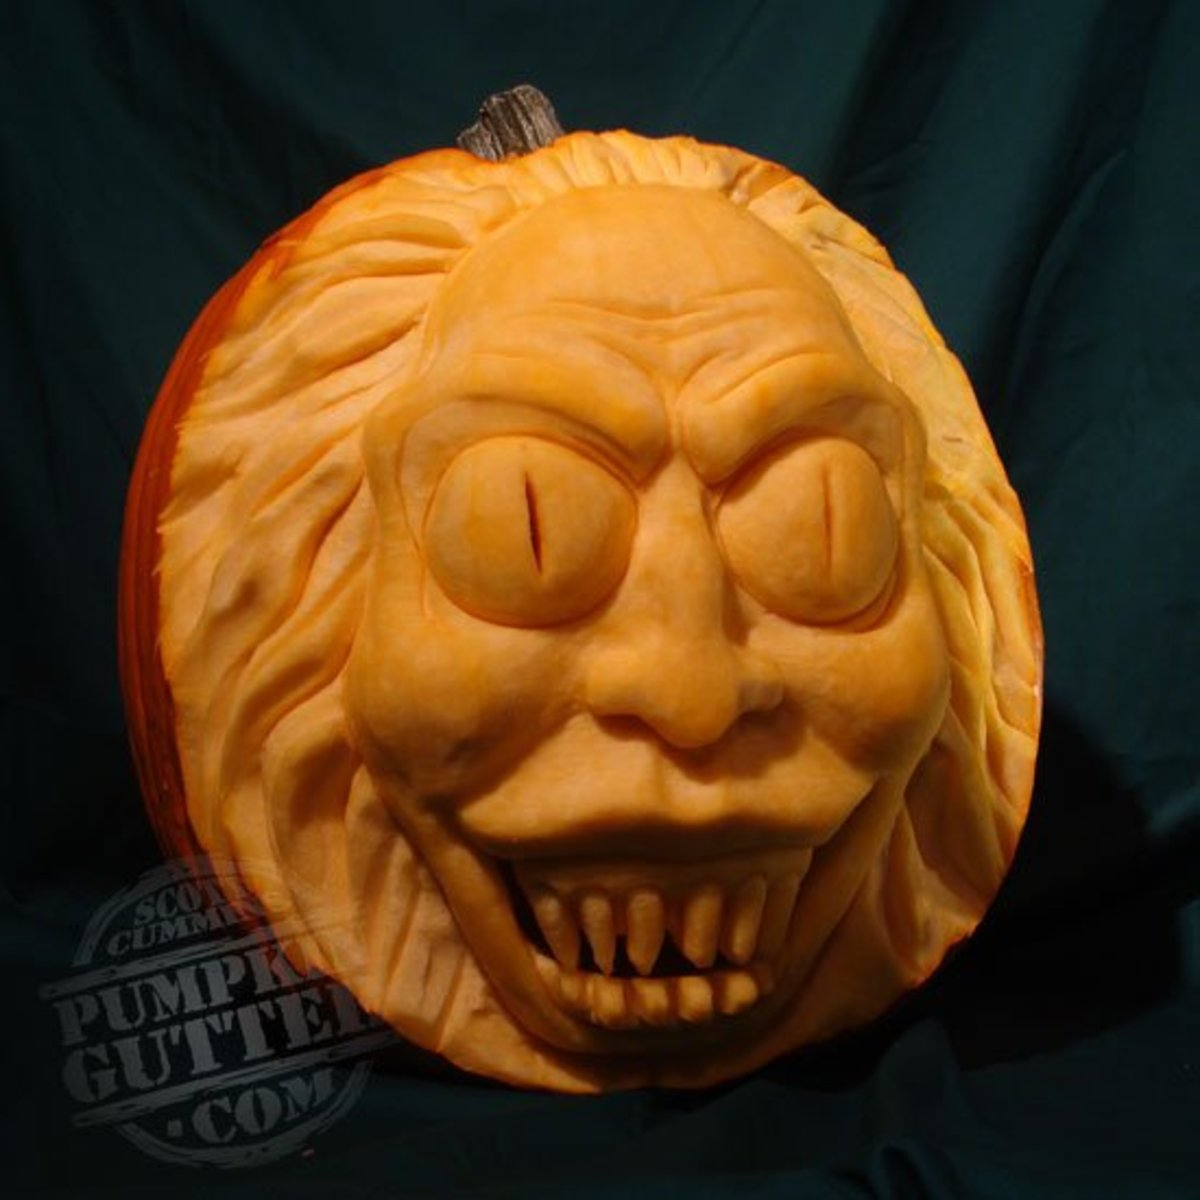 Beetlejuice pumpkin, Beetlejuice movie